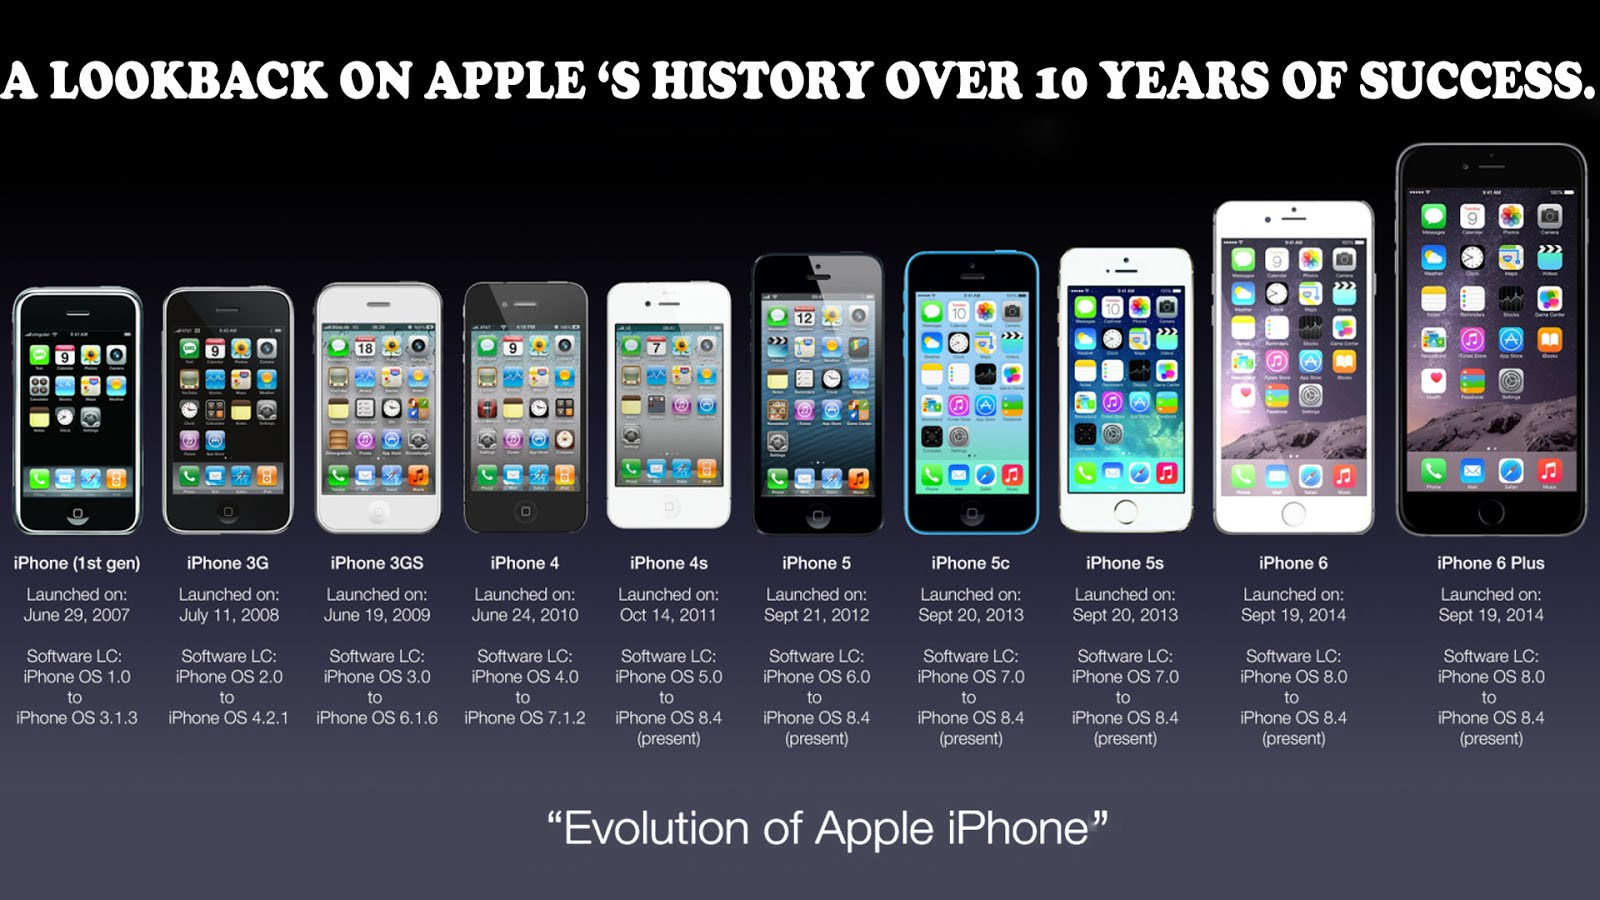 EVOLUTION OF APPLE 'S IPHONE ( LOOK BACK